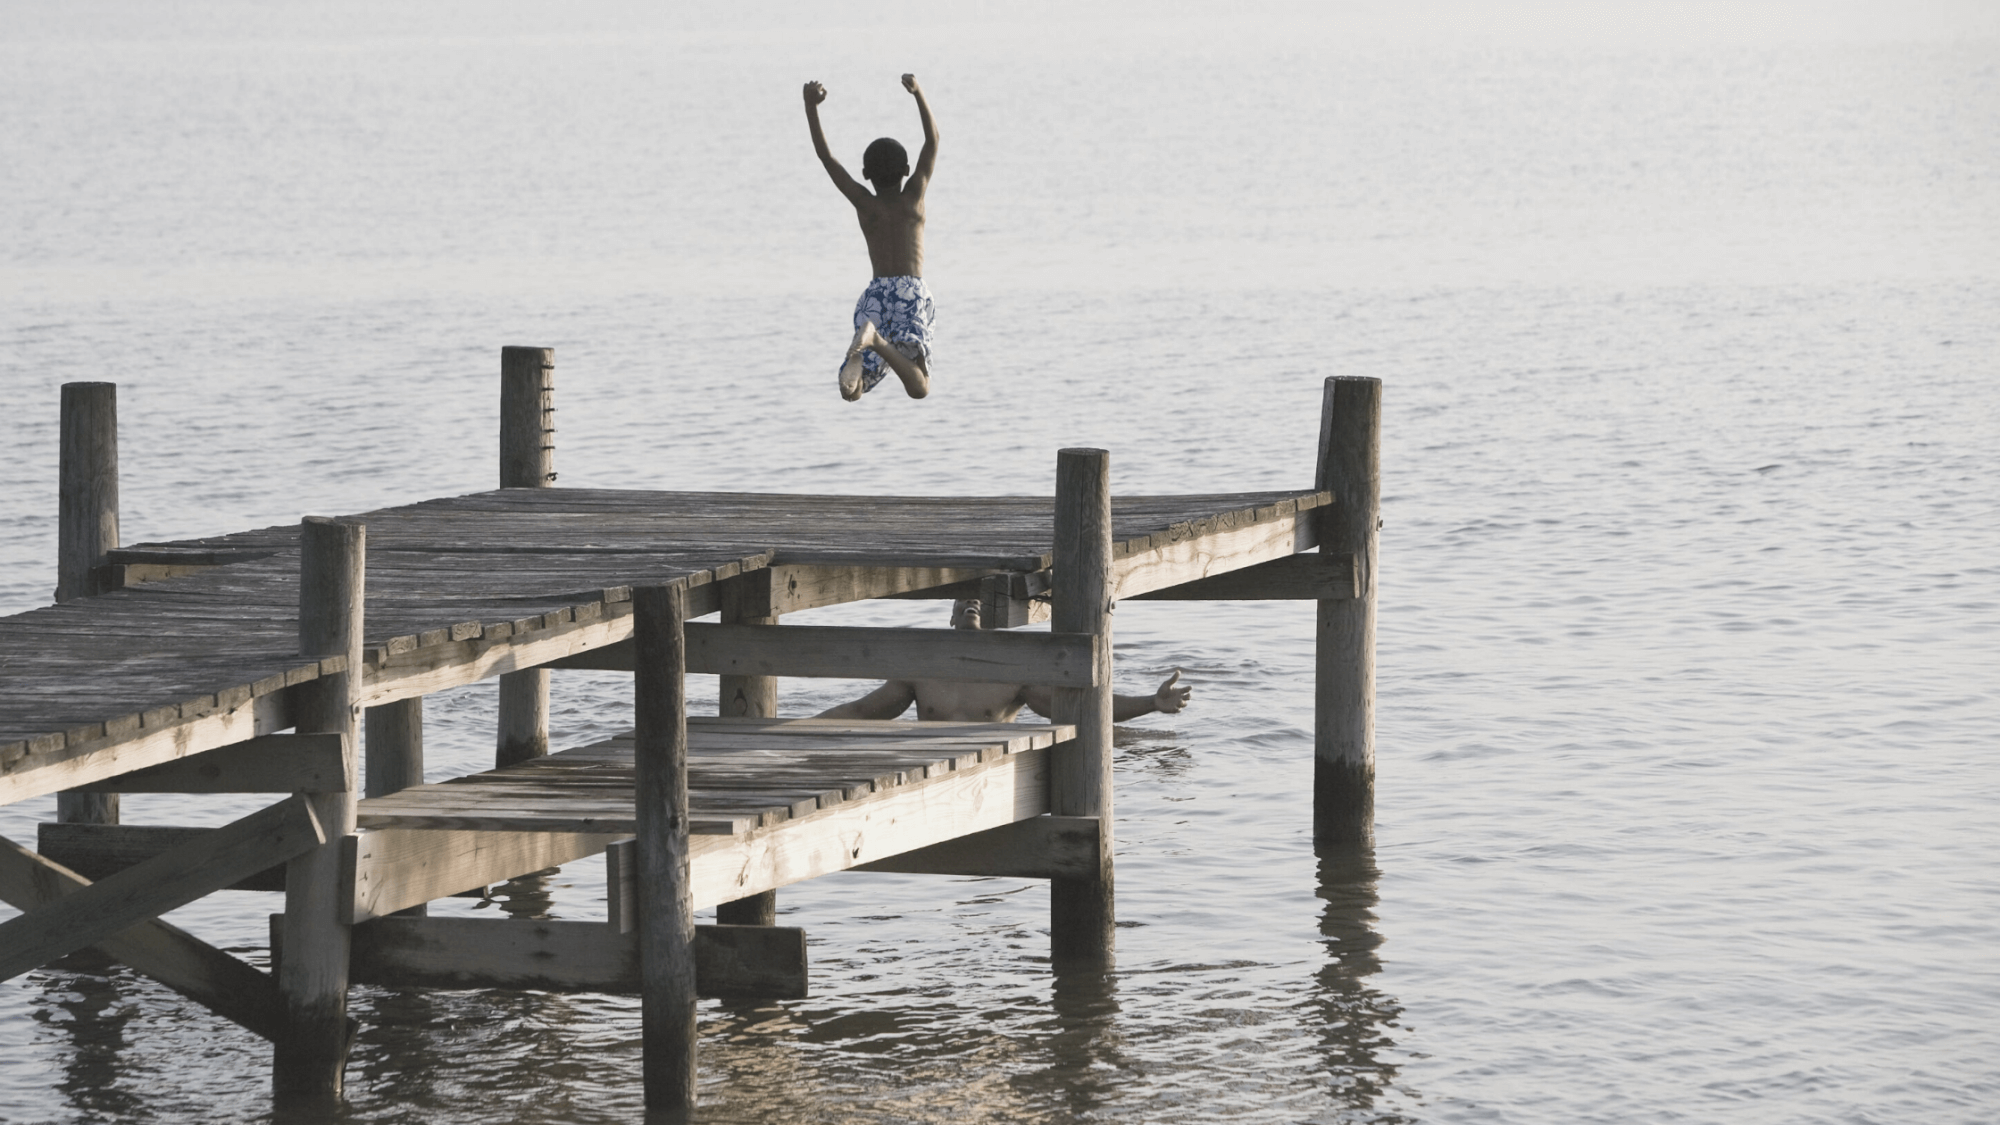 Boy jumping in water-Reckless and Audacious prayer